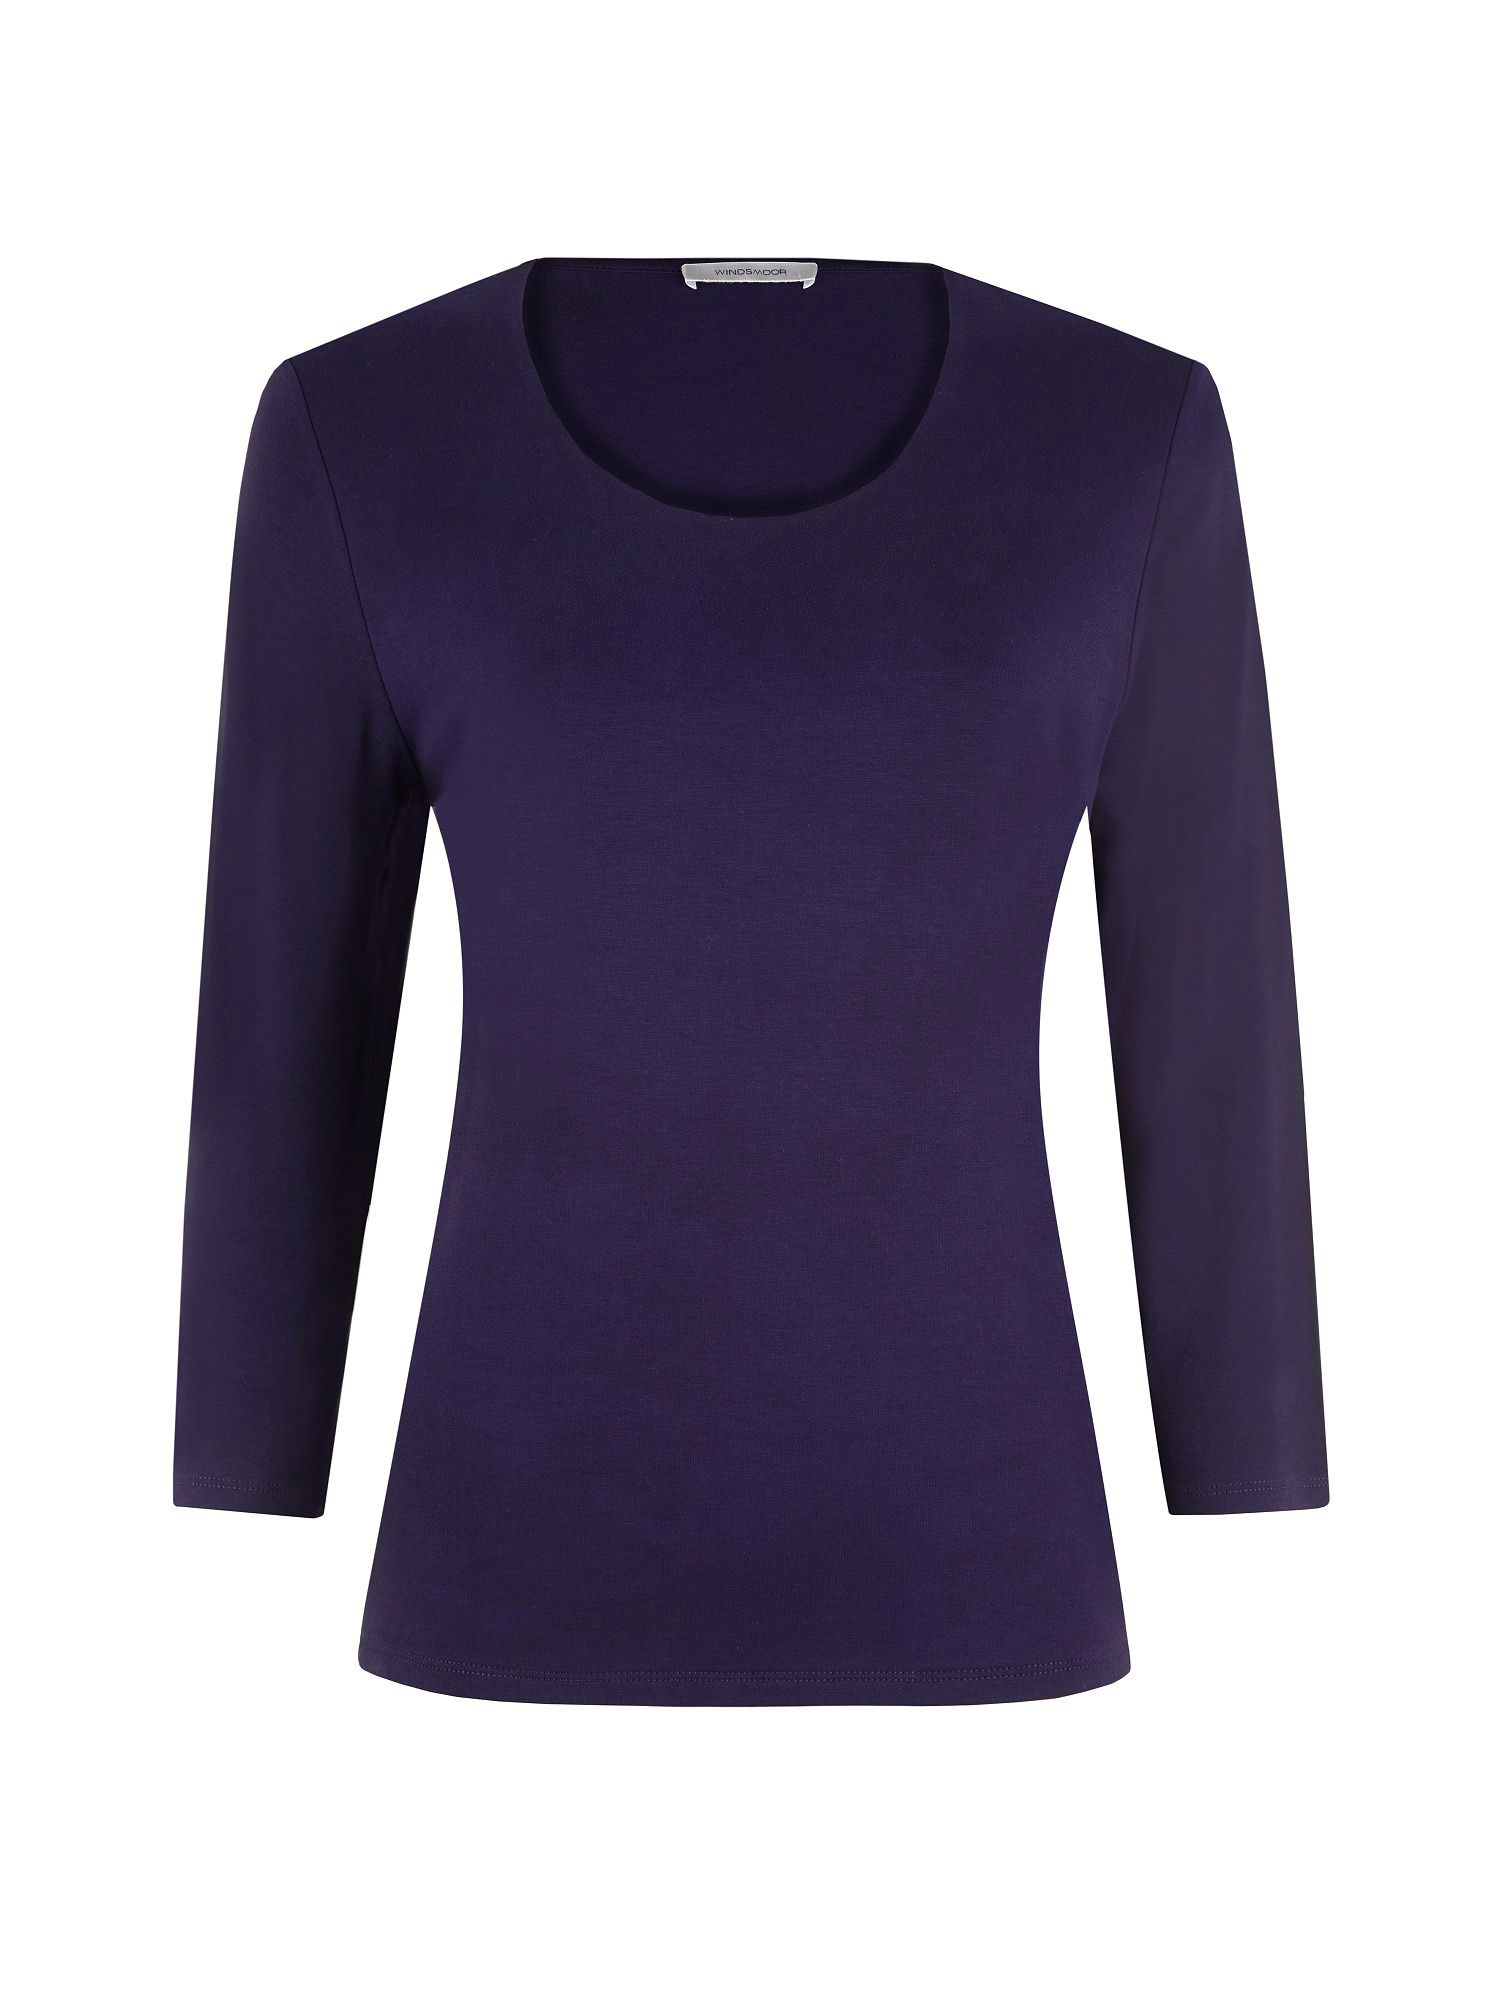 Damson scoop neck top